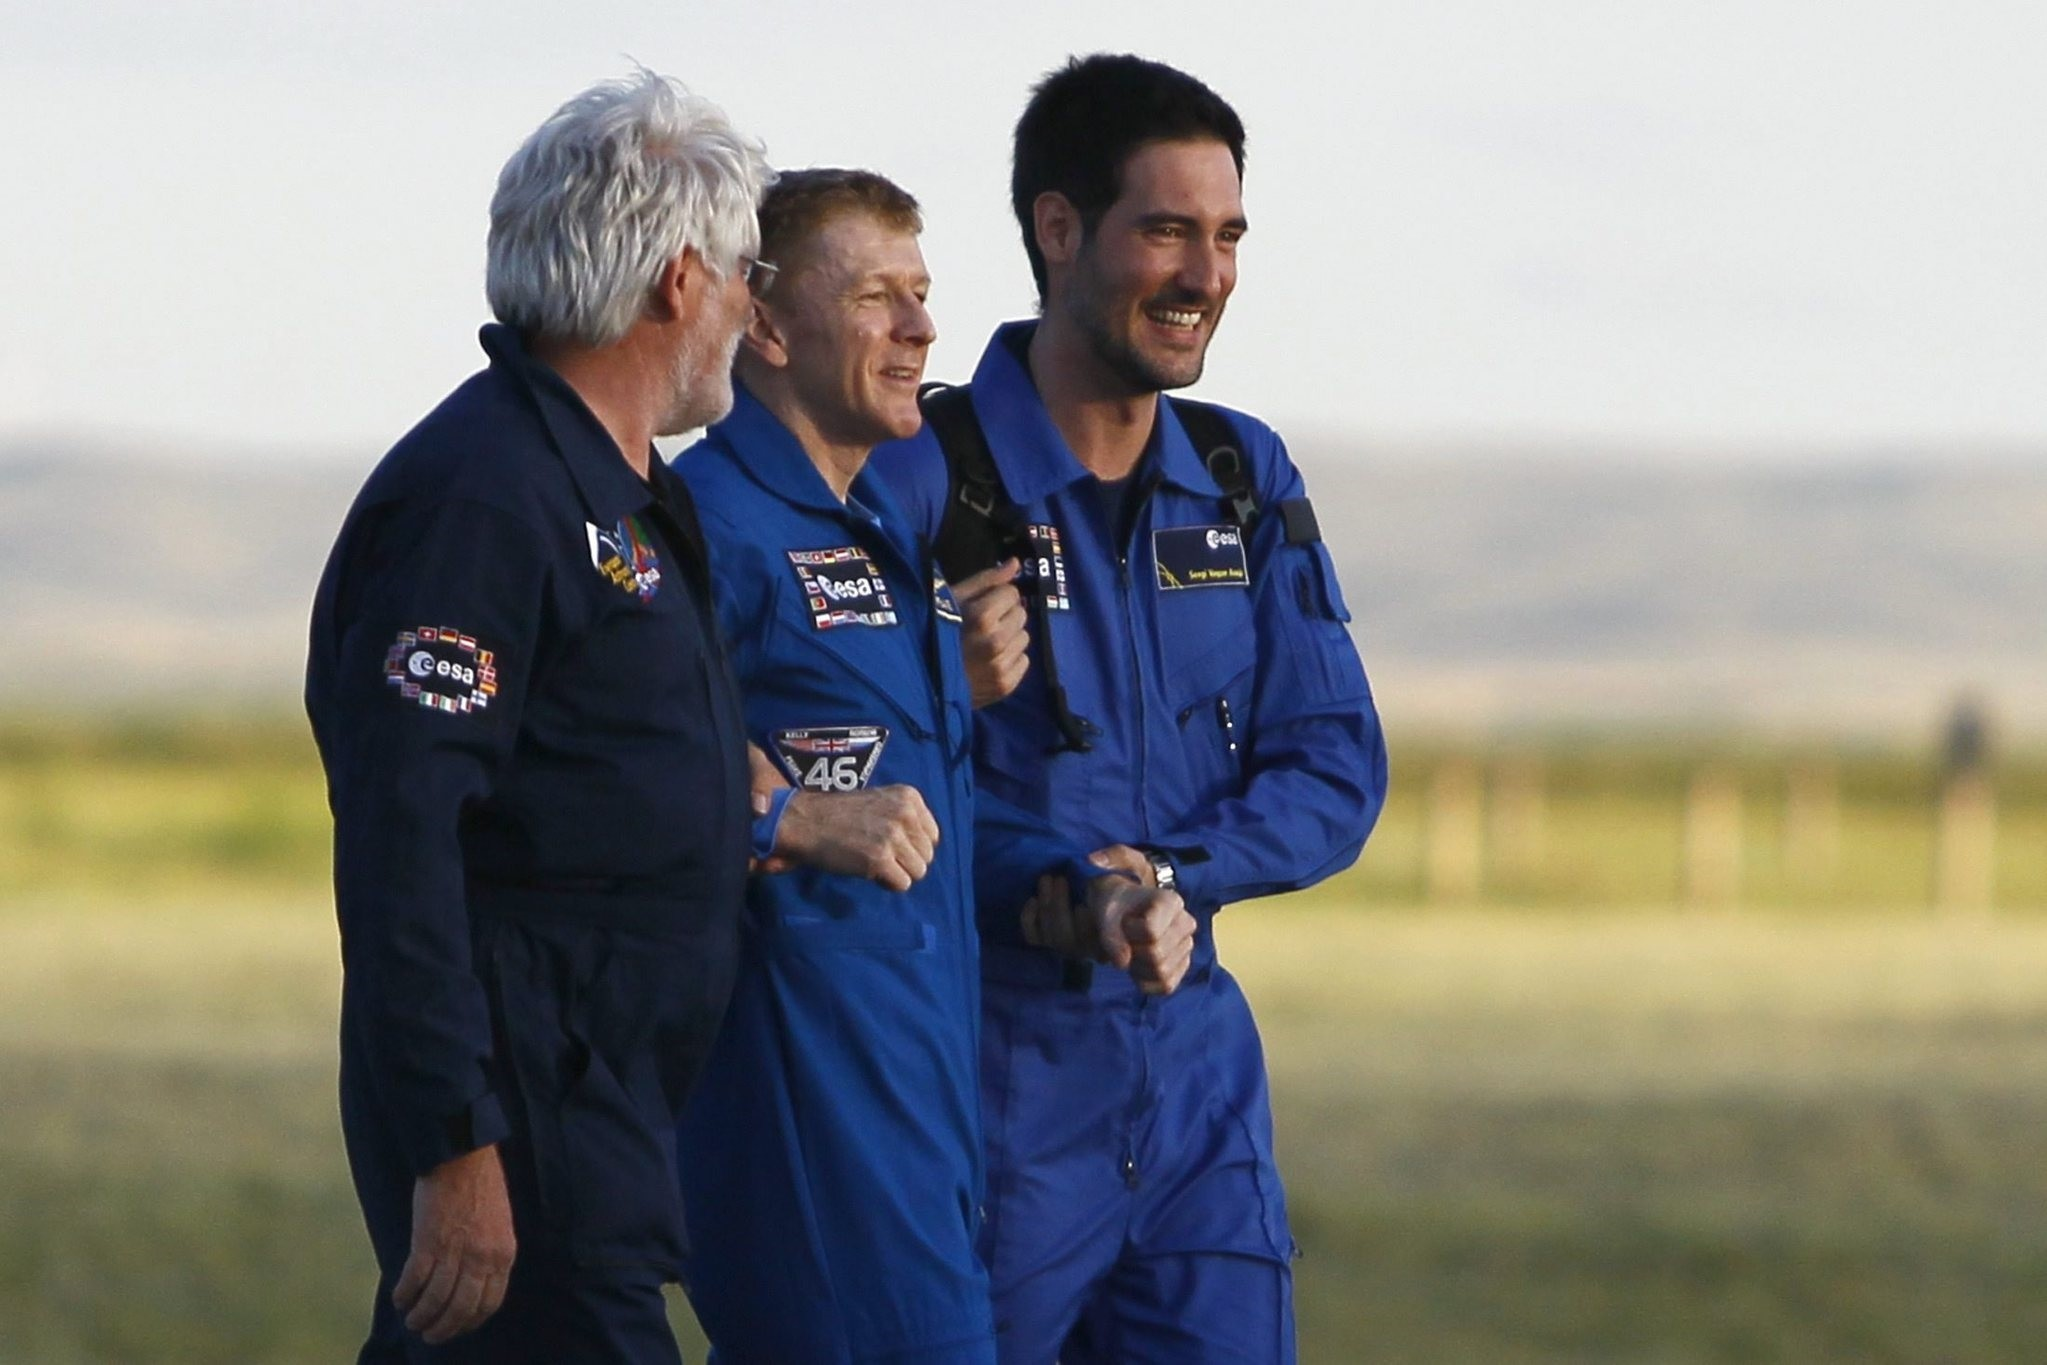 International Space Station (ISS) crew member Timothy Peake (C) of Britain is assisted by ground personnel upon his arrival at the airport of Karaganda, Kazakhstan, 18 June 2016. (EPA Photo)